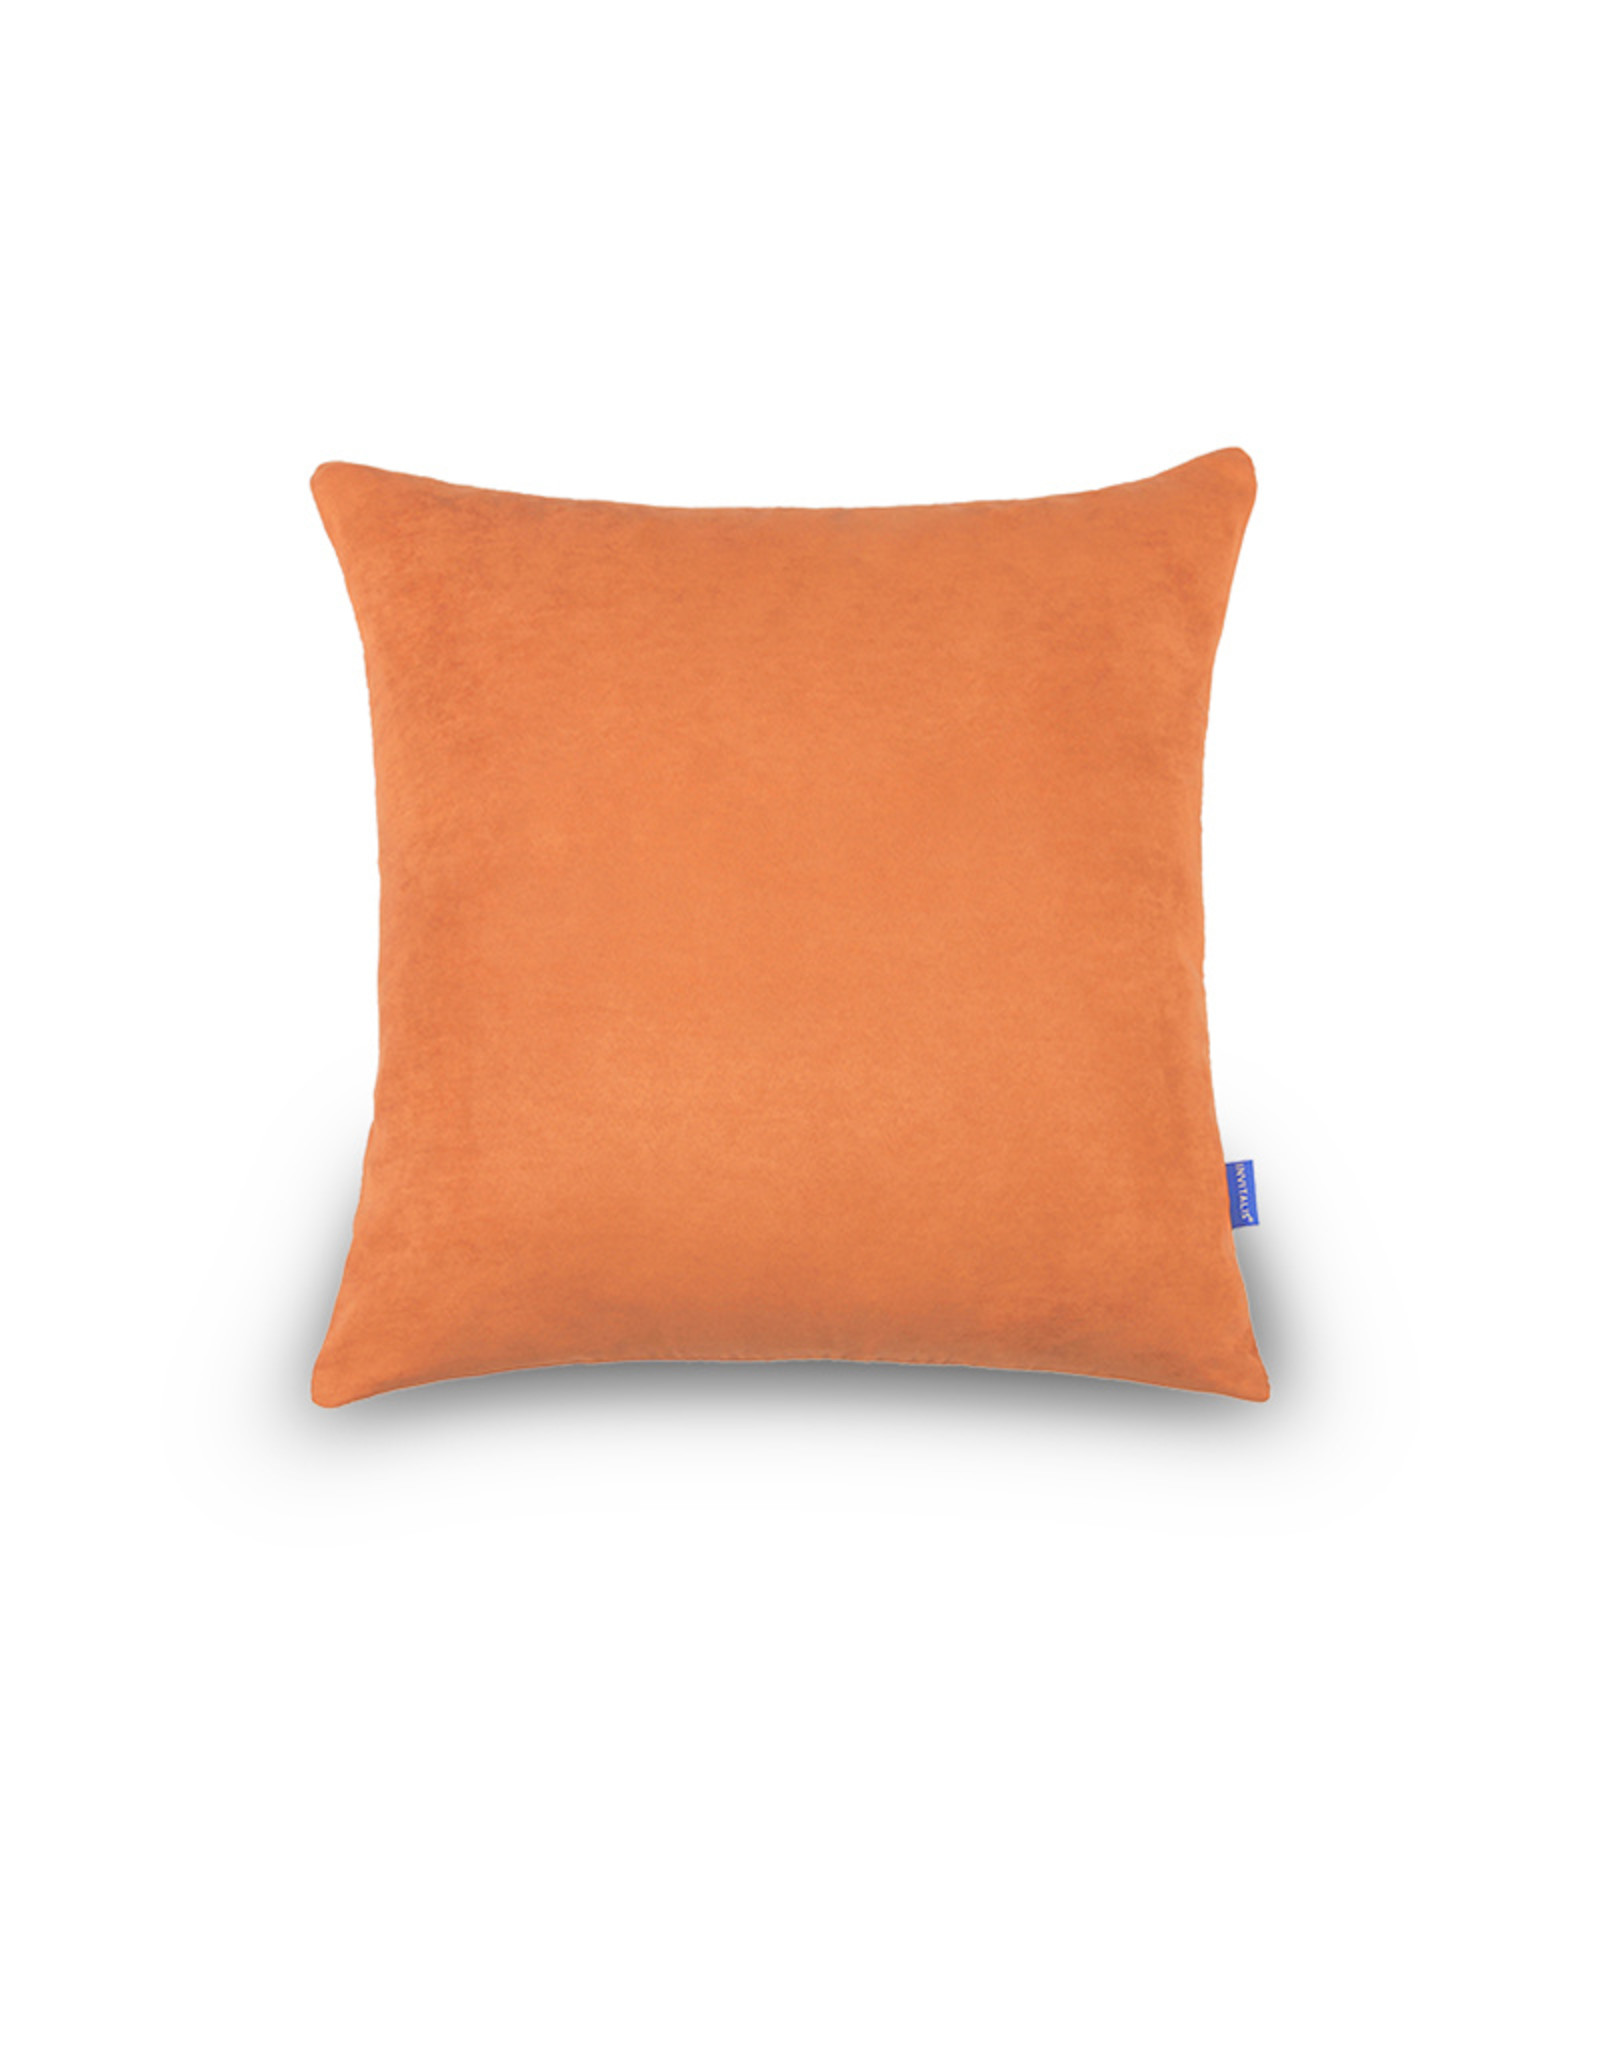 INVITALIS Ersatzbezug - Vitalymed Soft Orange